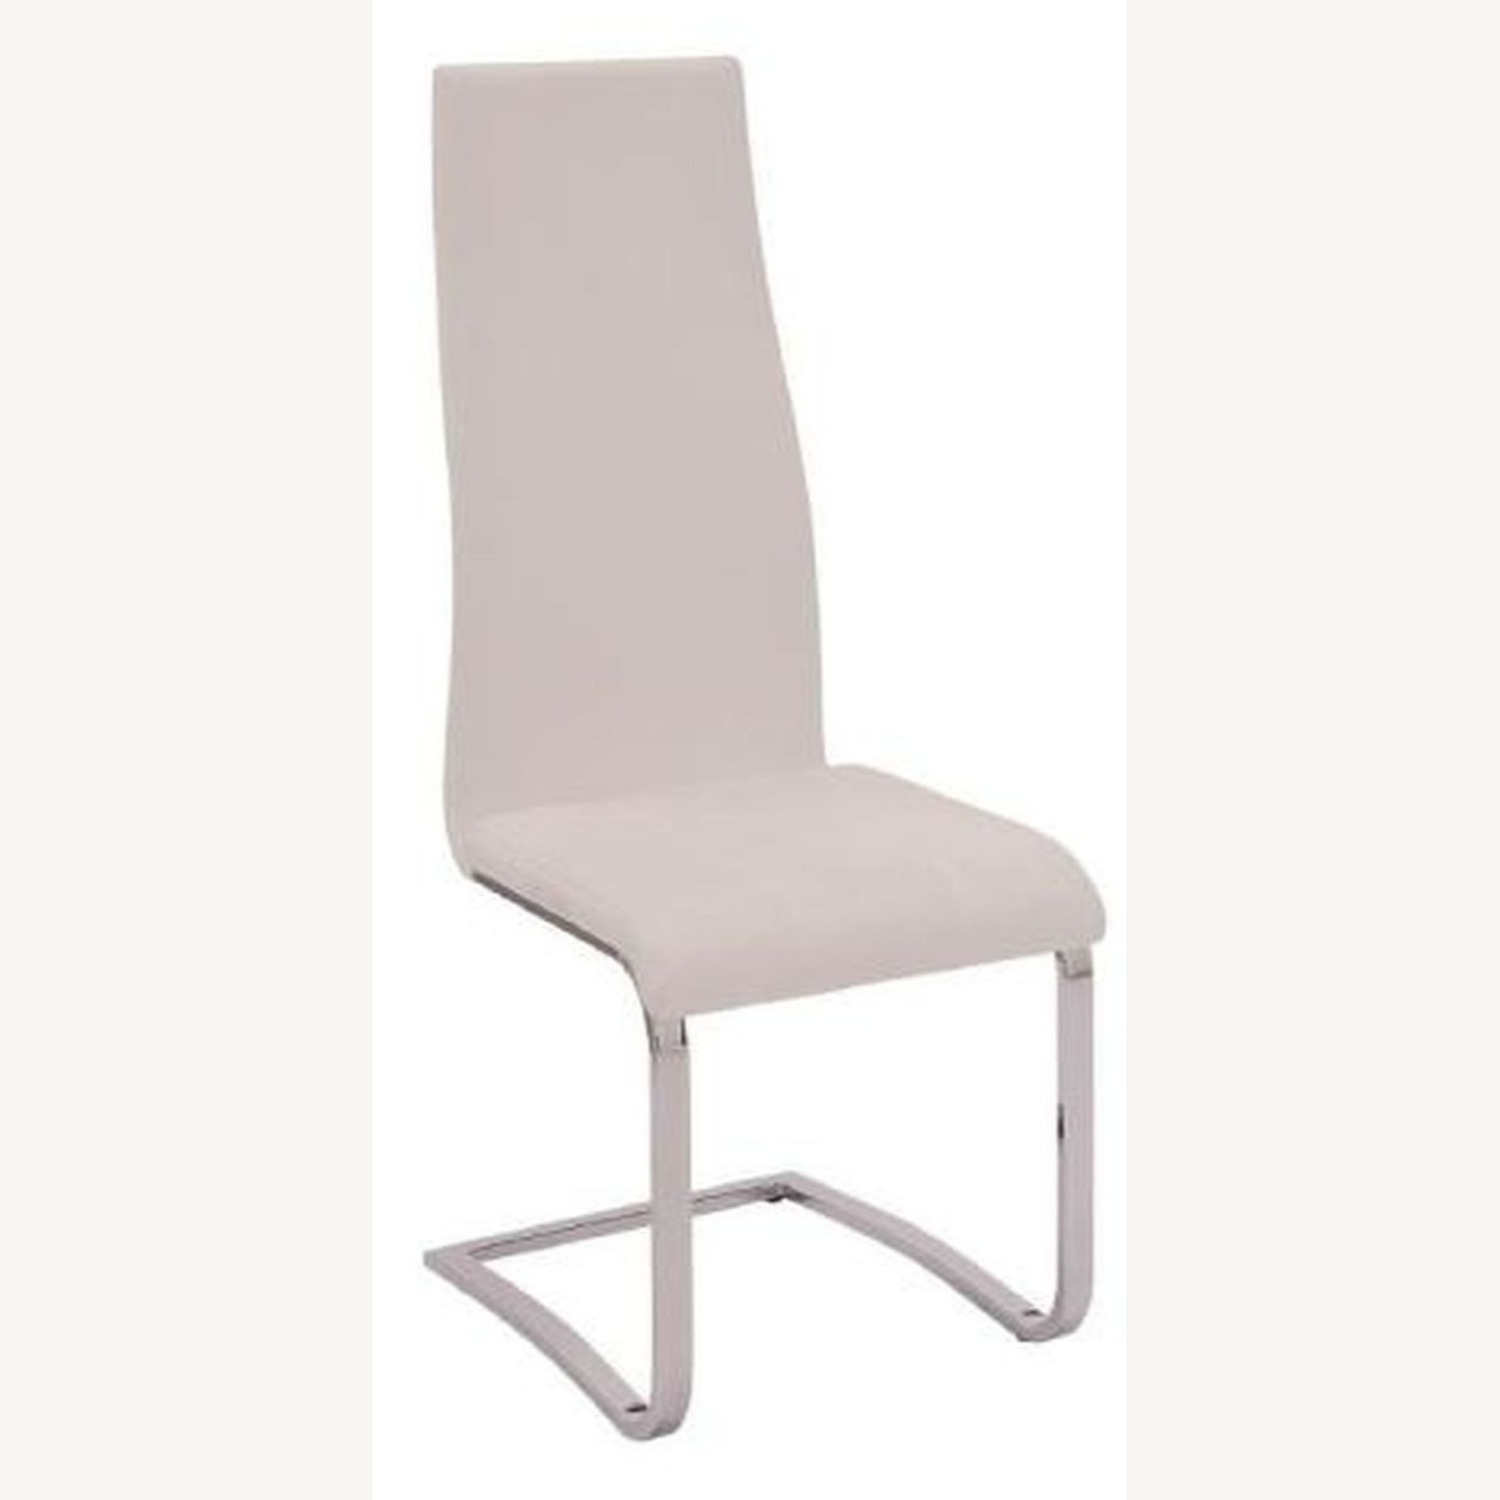 Iconic Breuer Style Side Chair In White Leather - image-0